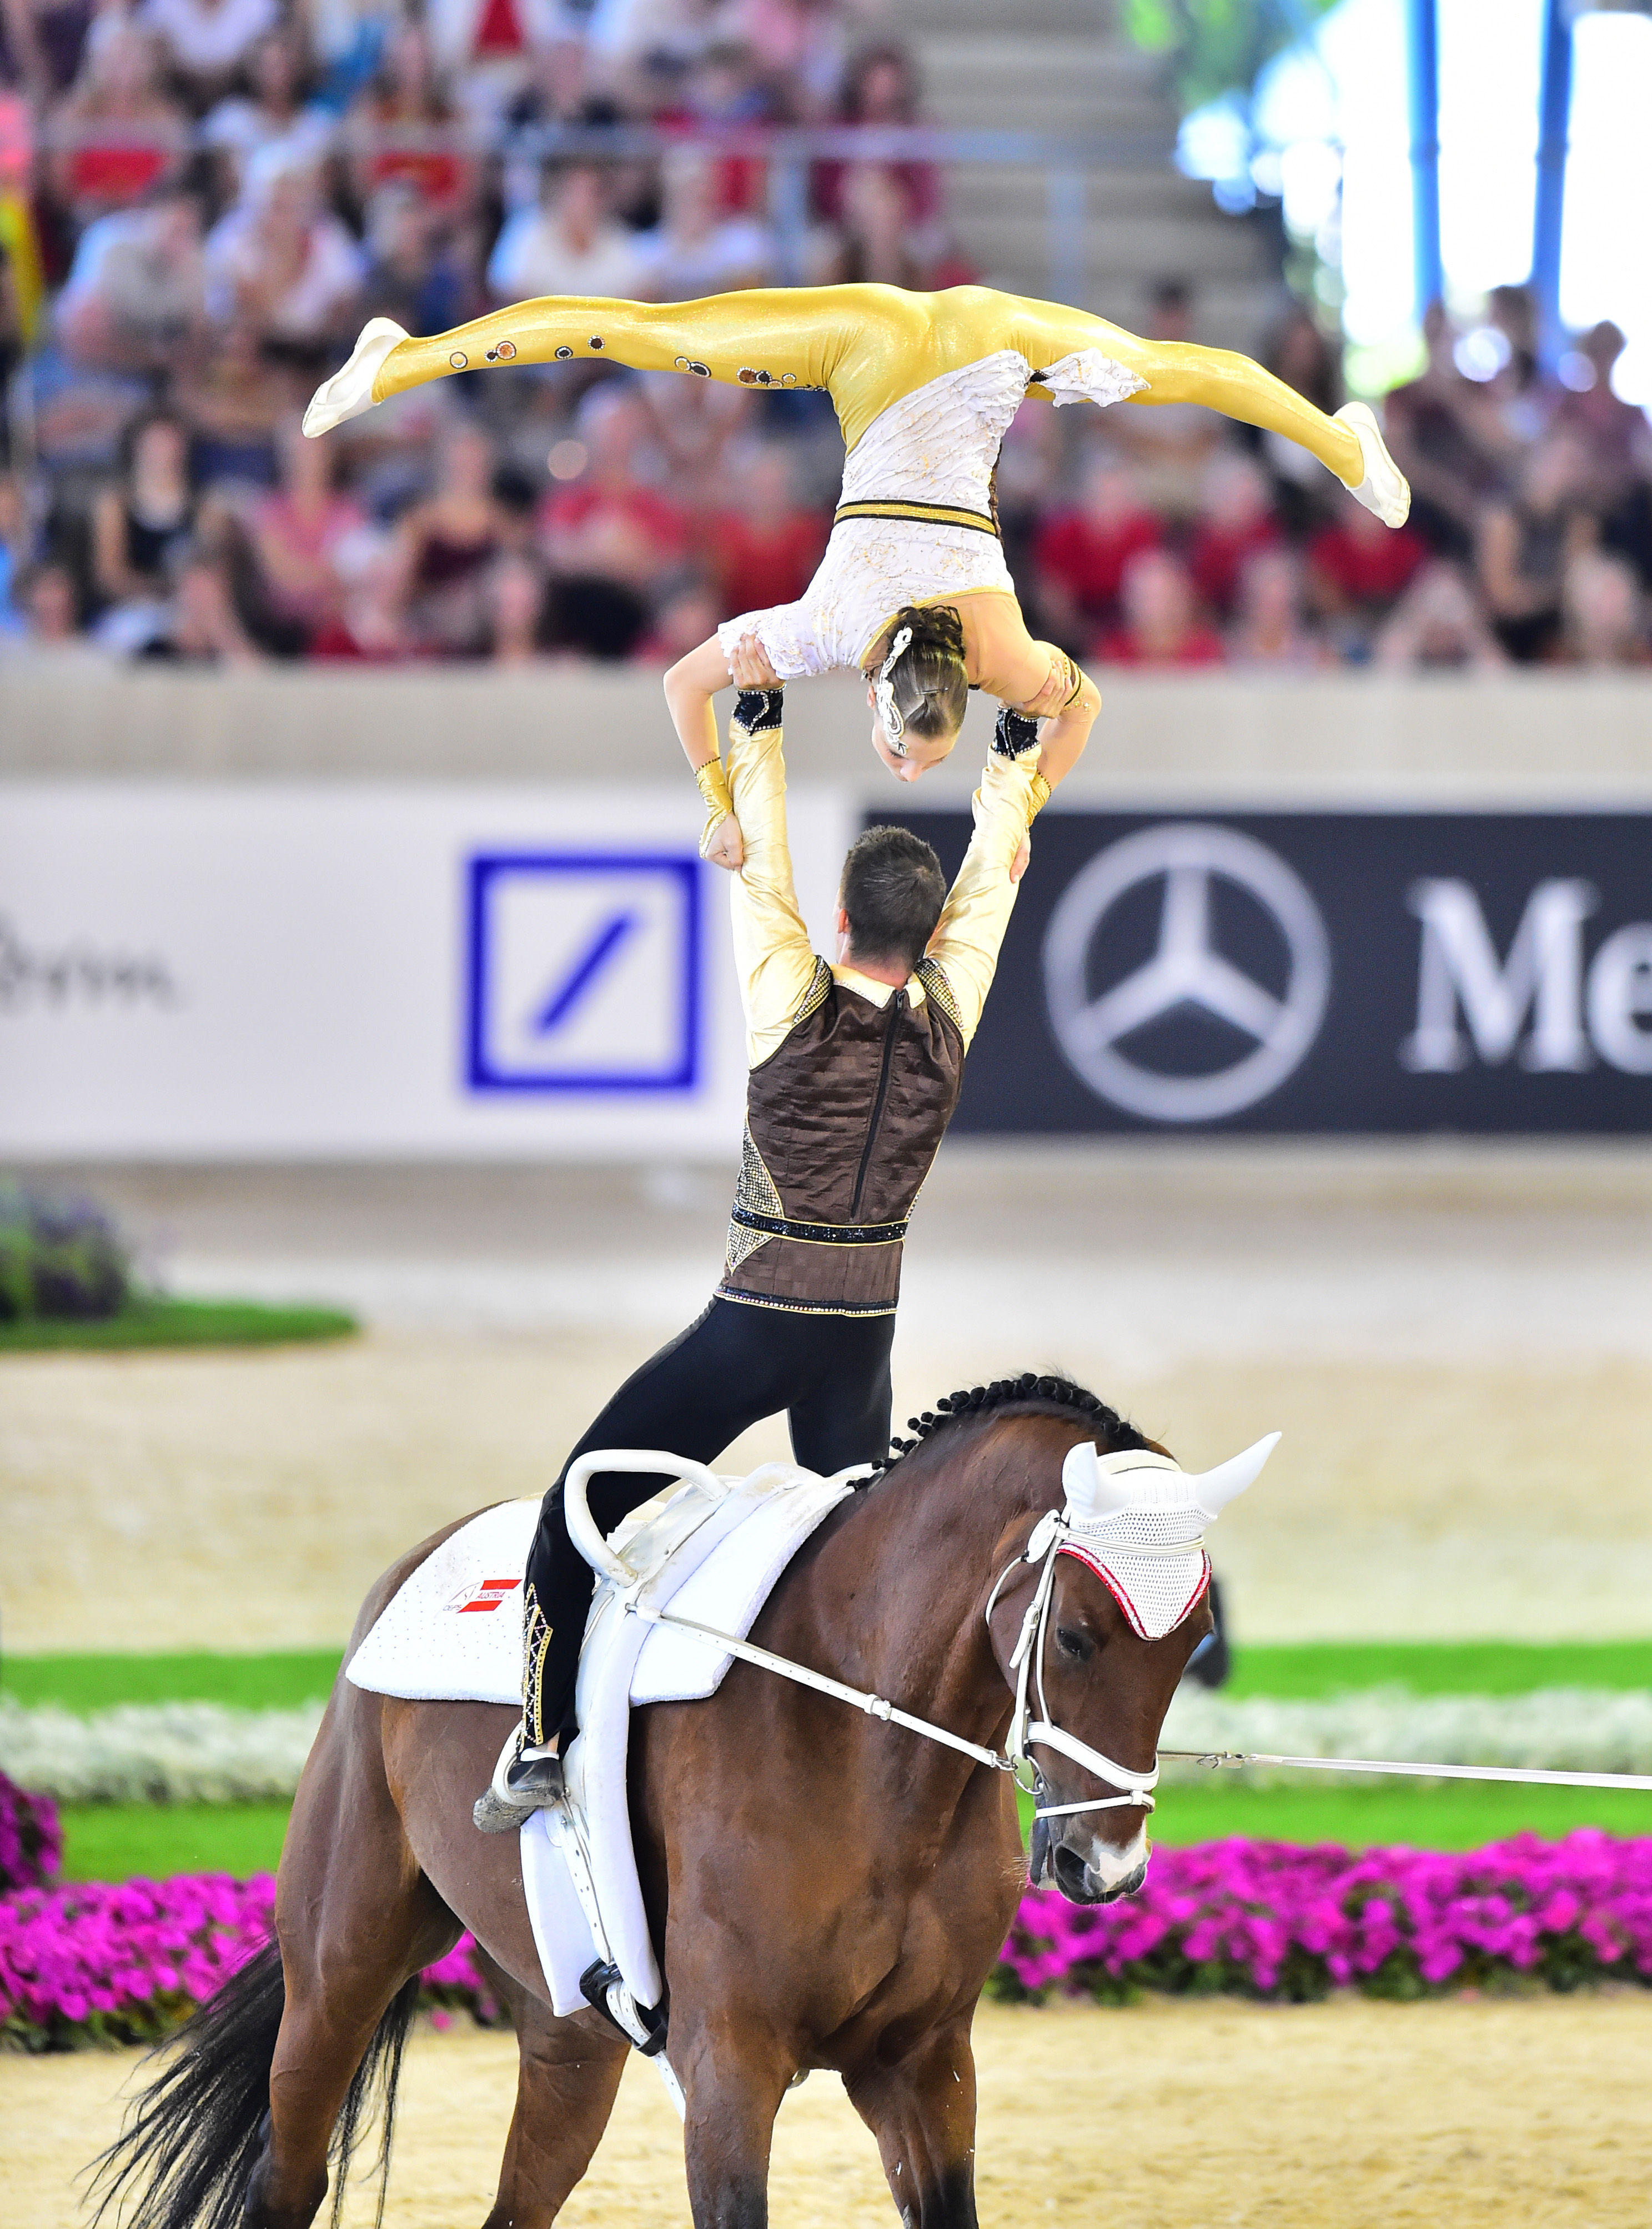 Horse Times Egypt: Equestrian Magazine :Event News :GERMANY AND AUSTRIA CLAIM EUROPEAN CHAMPIONSHIPS VAULTING GOLD